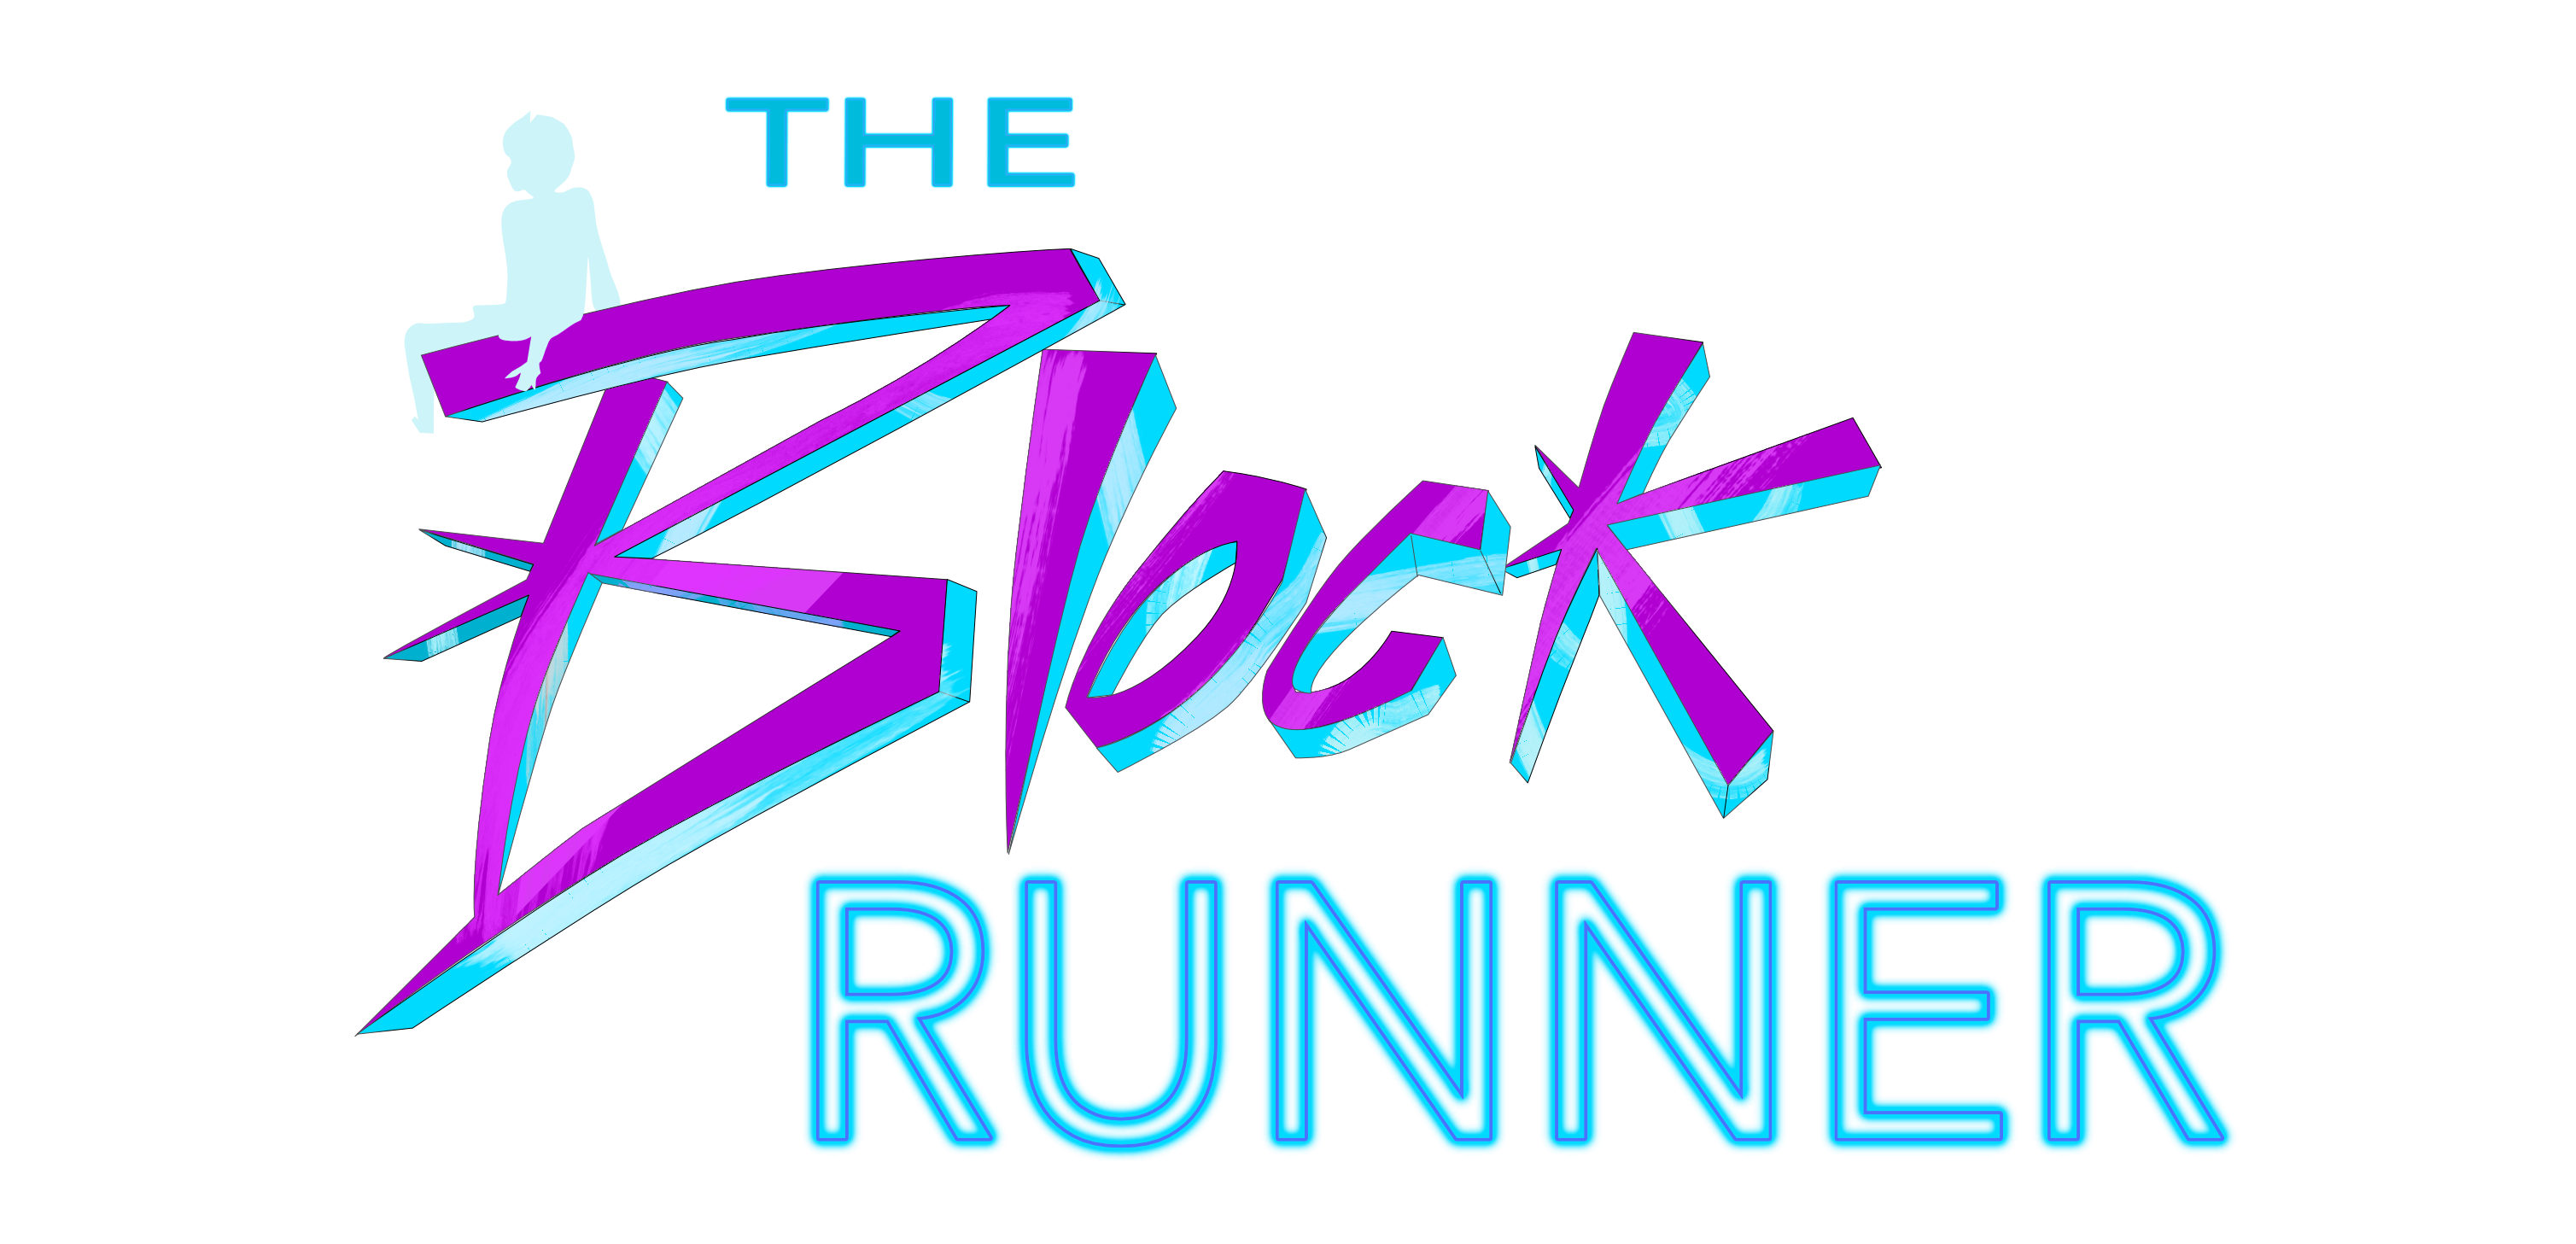 The Block Runner Logo